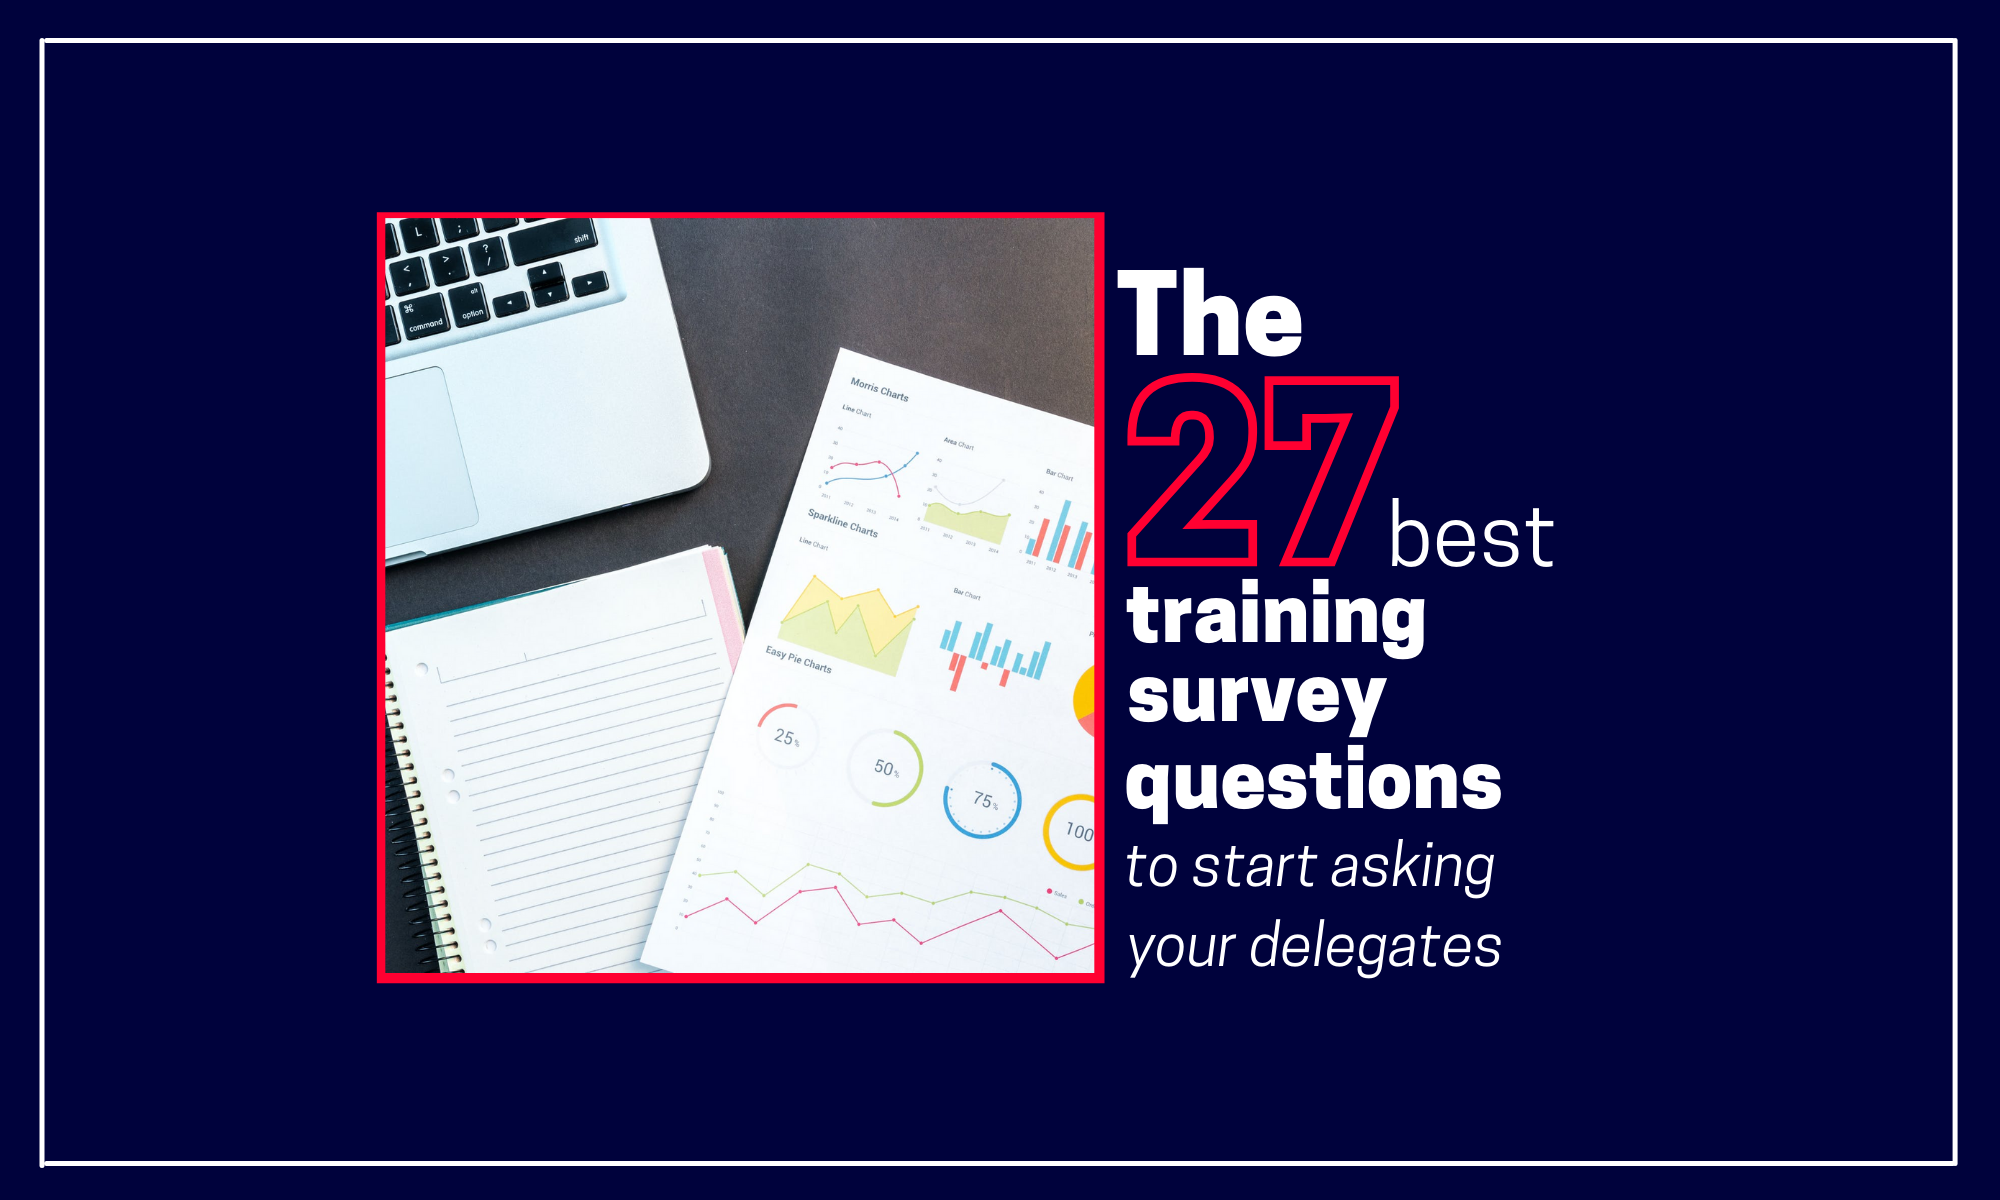 the 27 best training survey questions to start asking your delegates